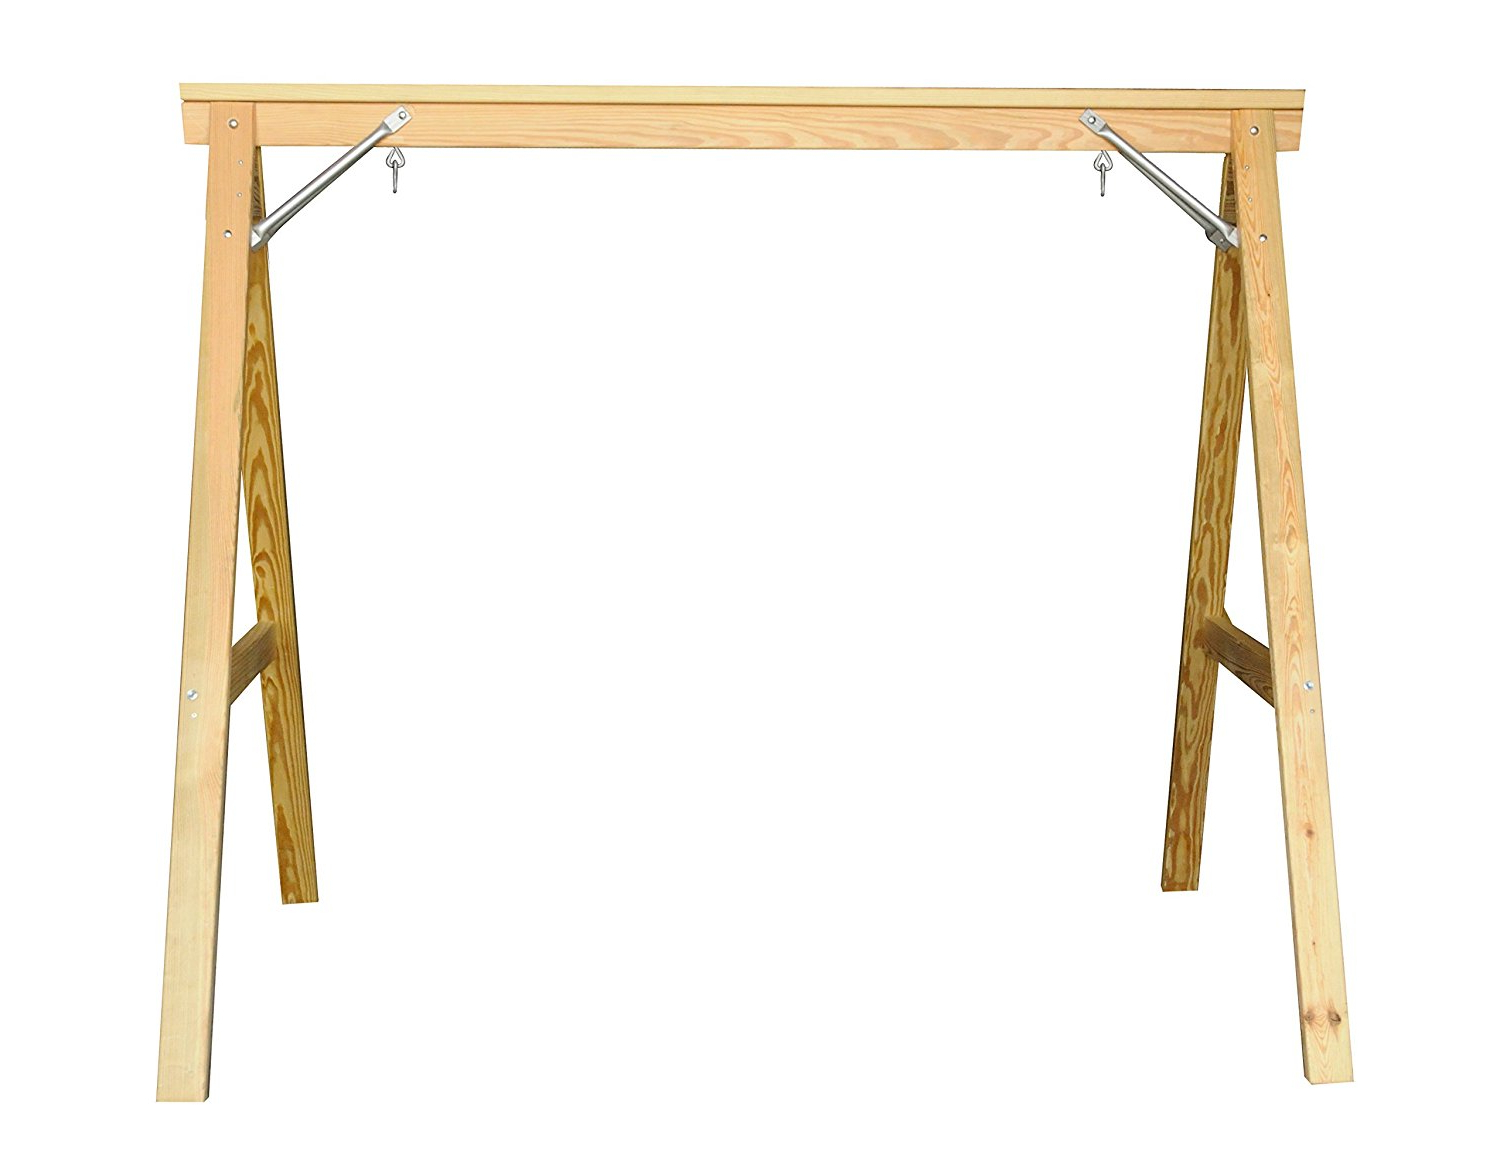 Widely Used Hardwood Hanging Porch Swings With Stand Within Scandinavian Style Wood Porch Swing Stand For 4Ft Swings (View 30 of 30)